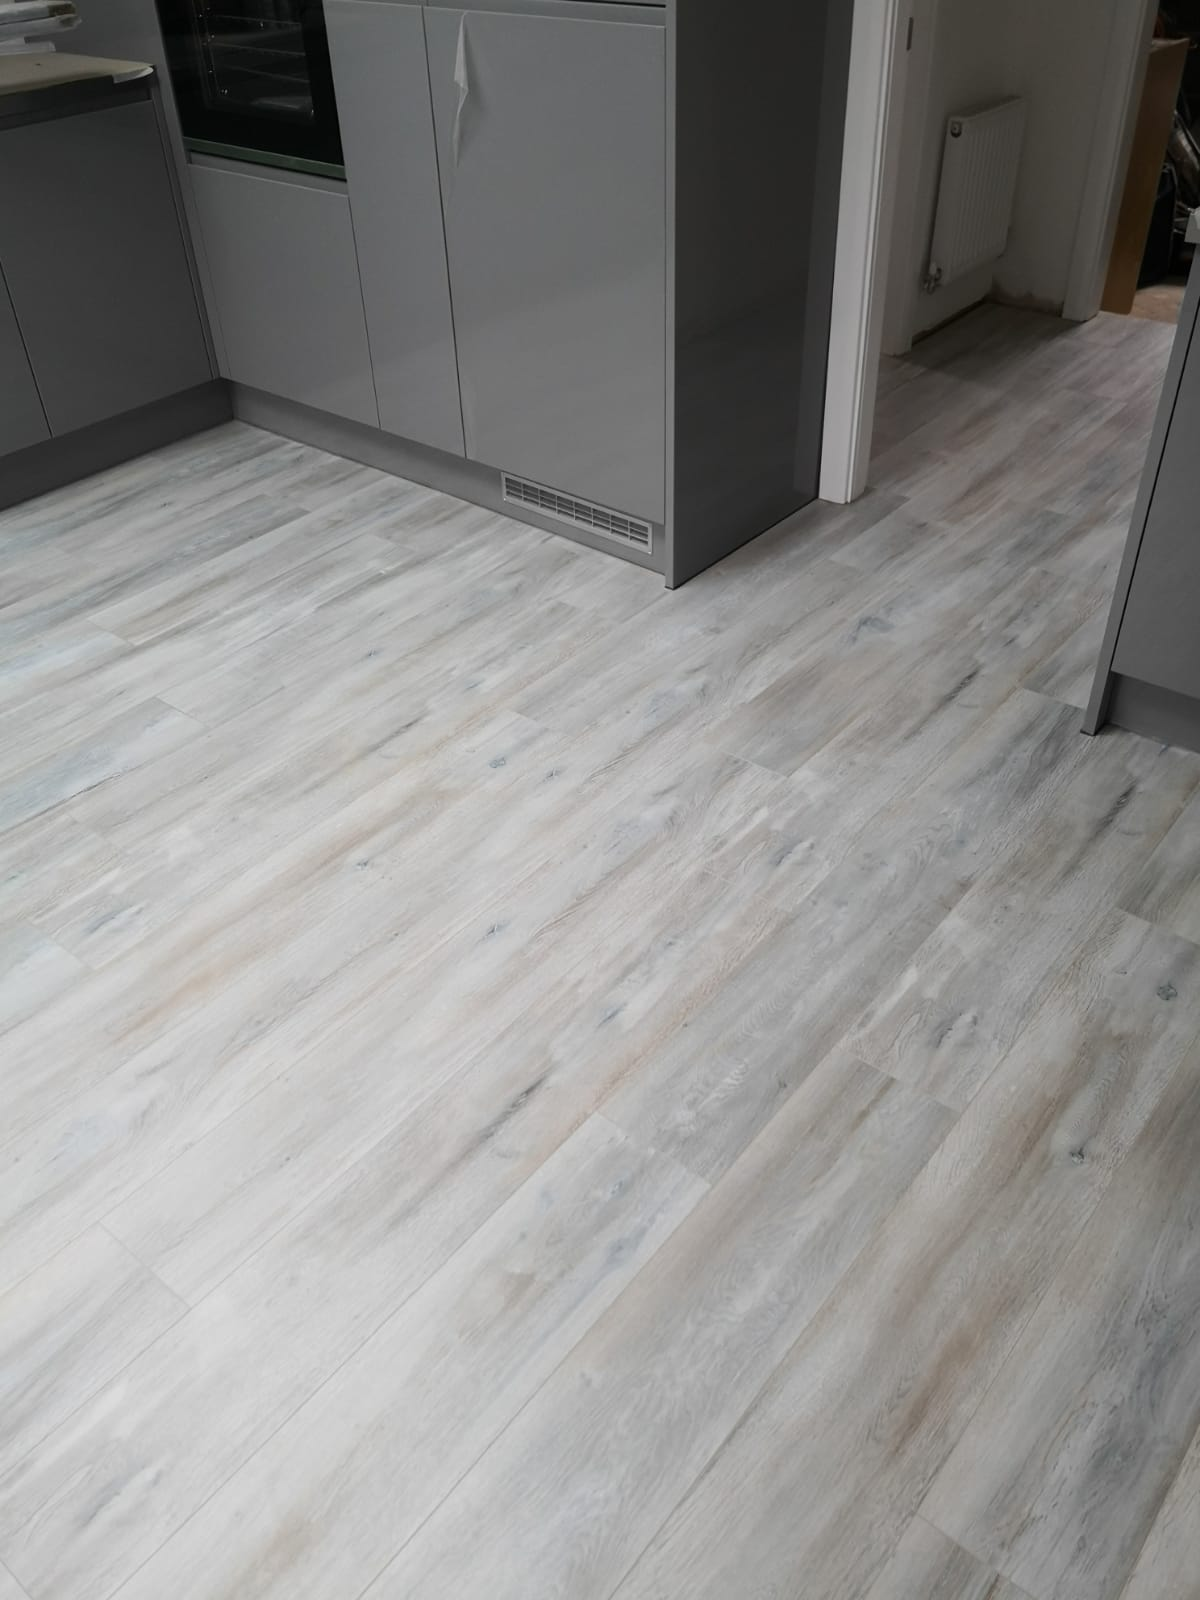 Laminate Floor Installation Egger Pro Aqua Plus Classic